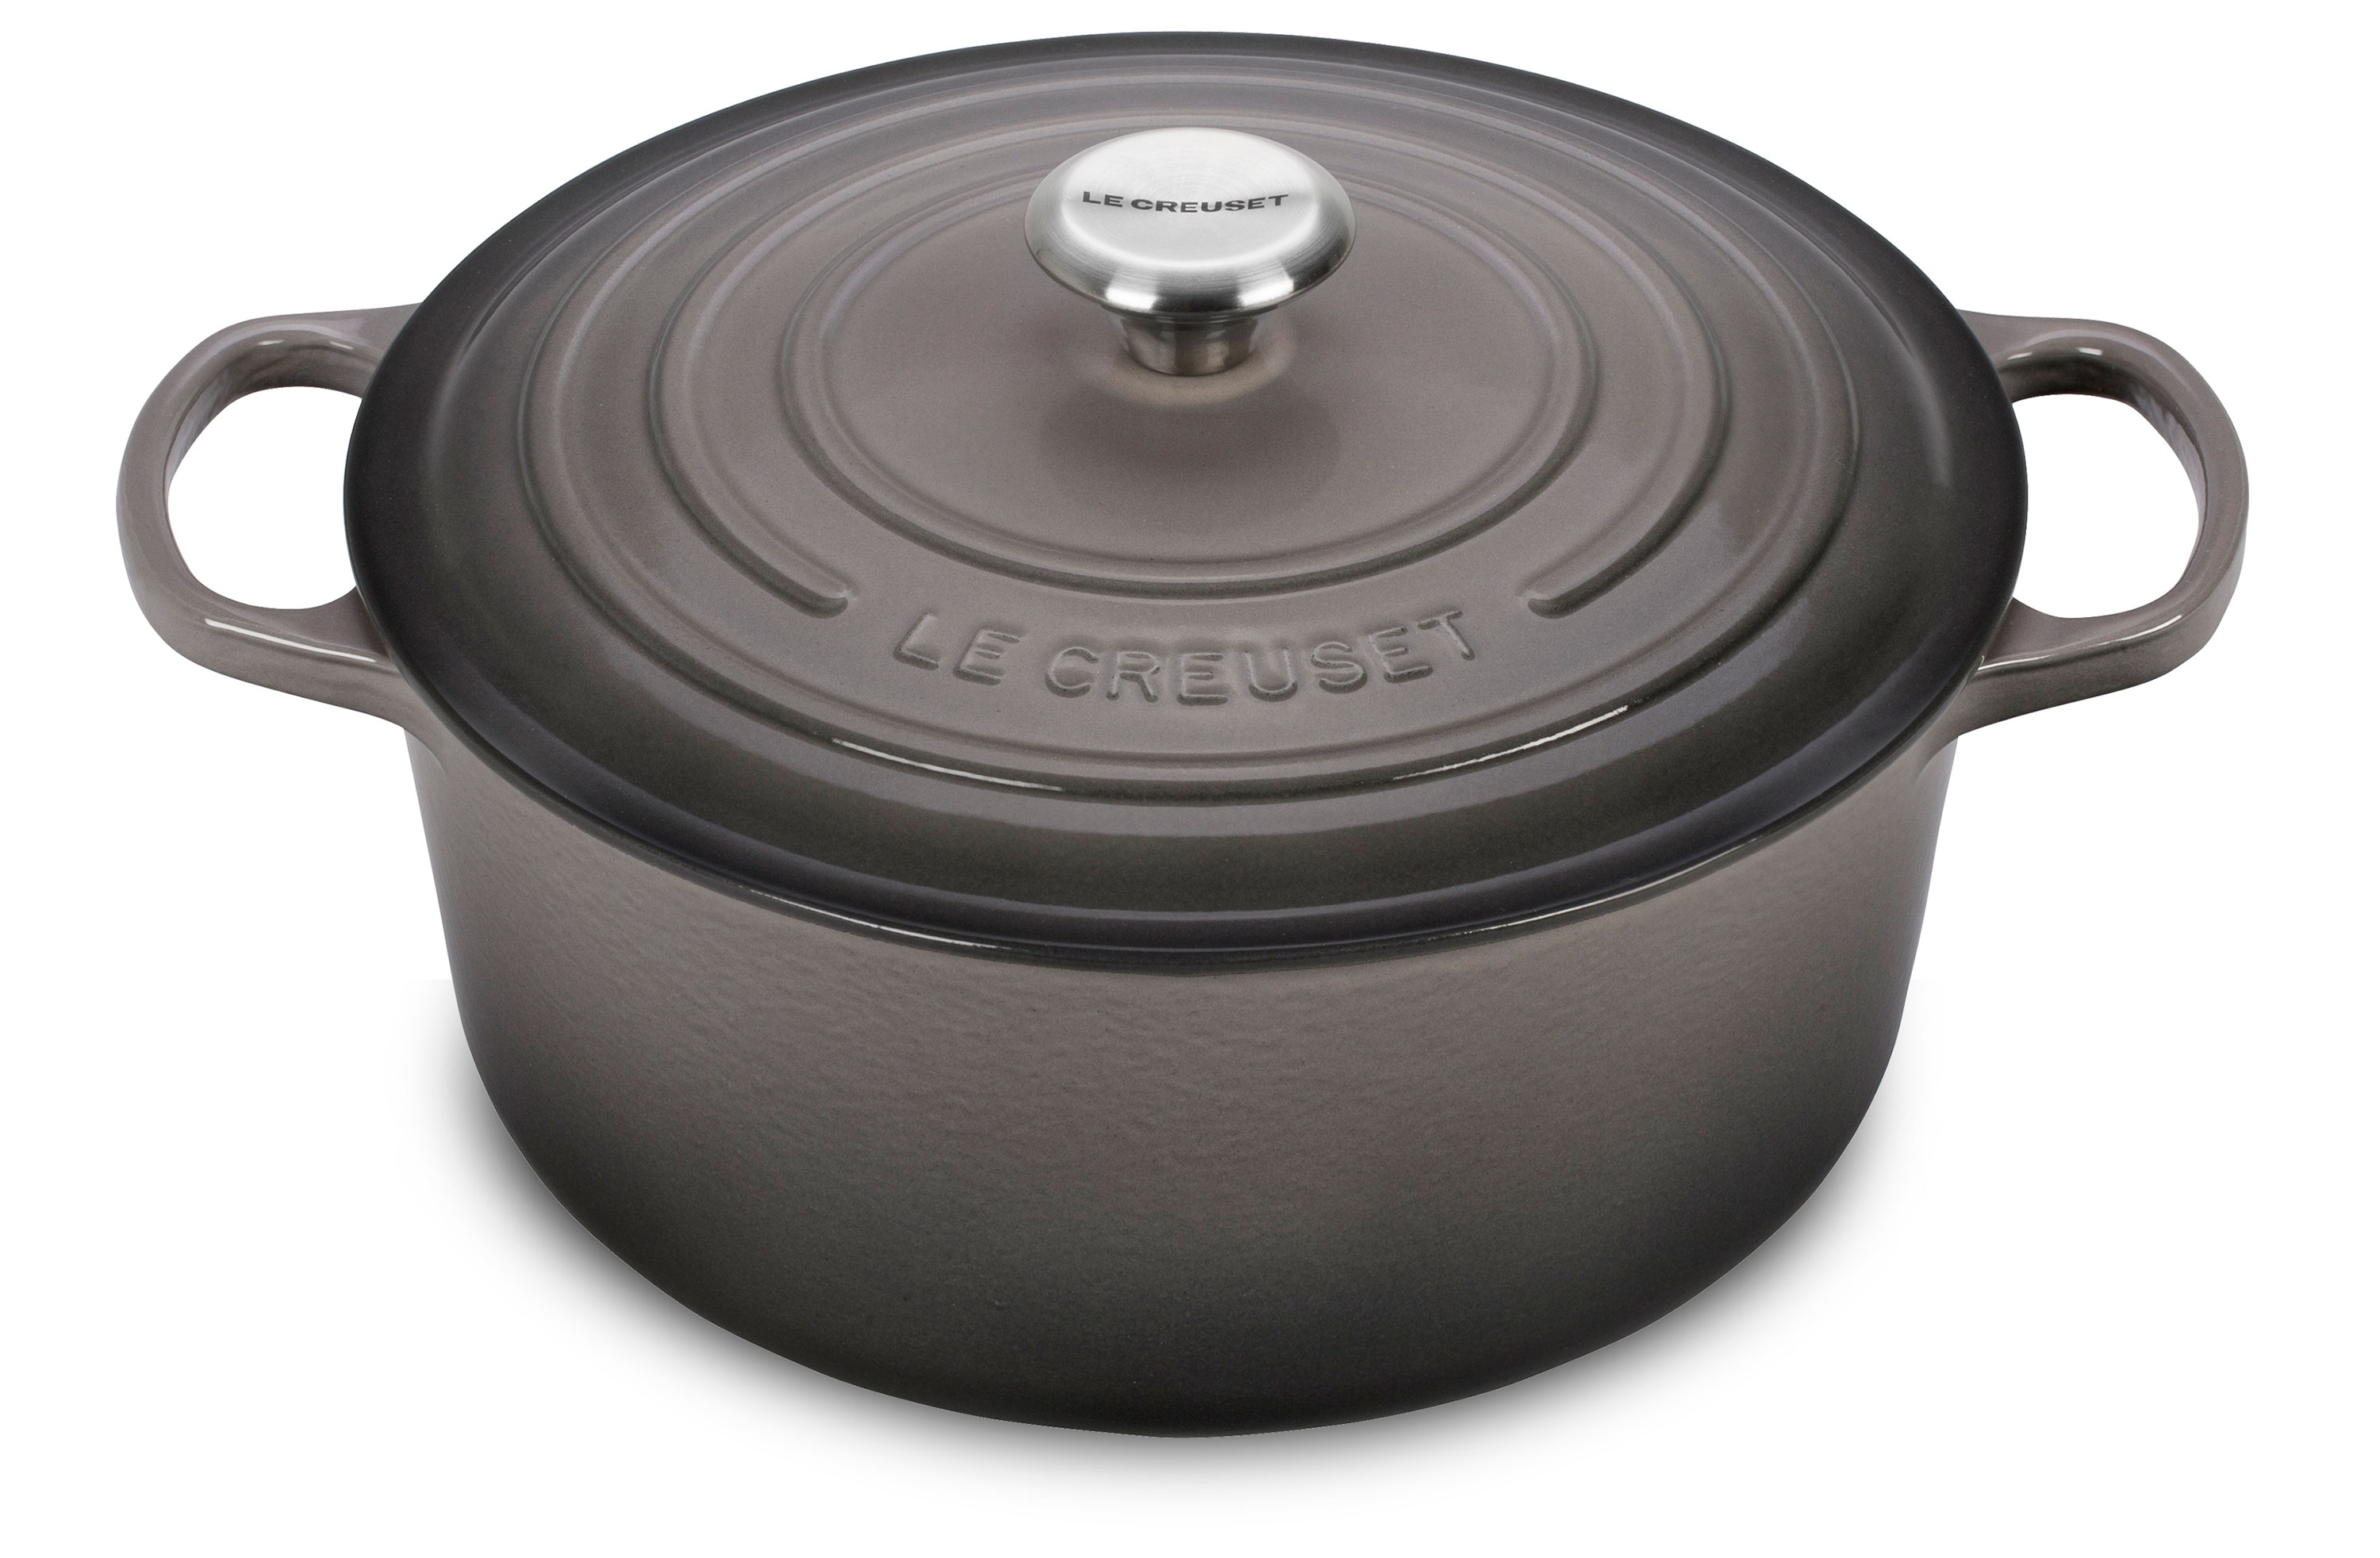 le creuset signature cast iron round dutch oven 9 quart oyster cutlery and more. Black Bedroom Furniture Sets. Home Design Ideas